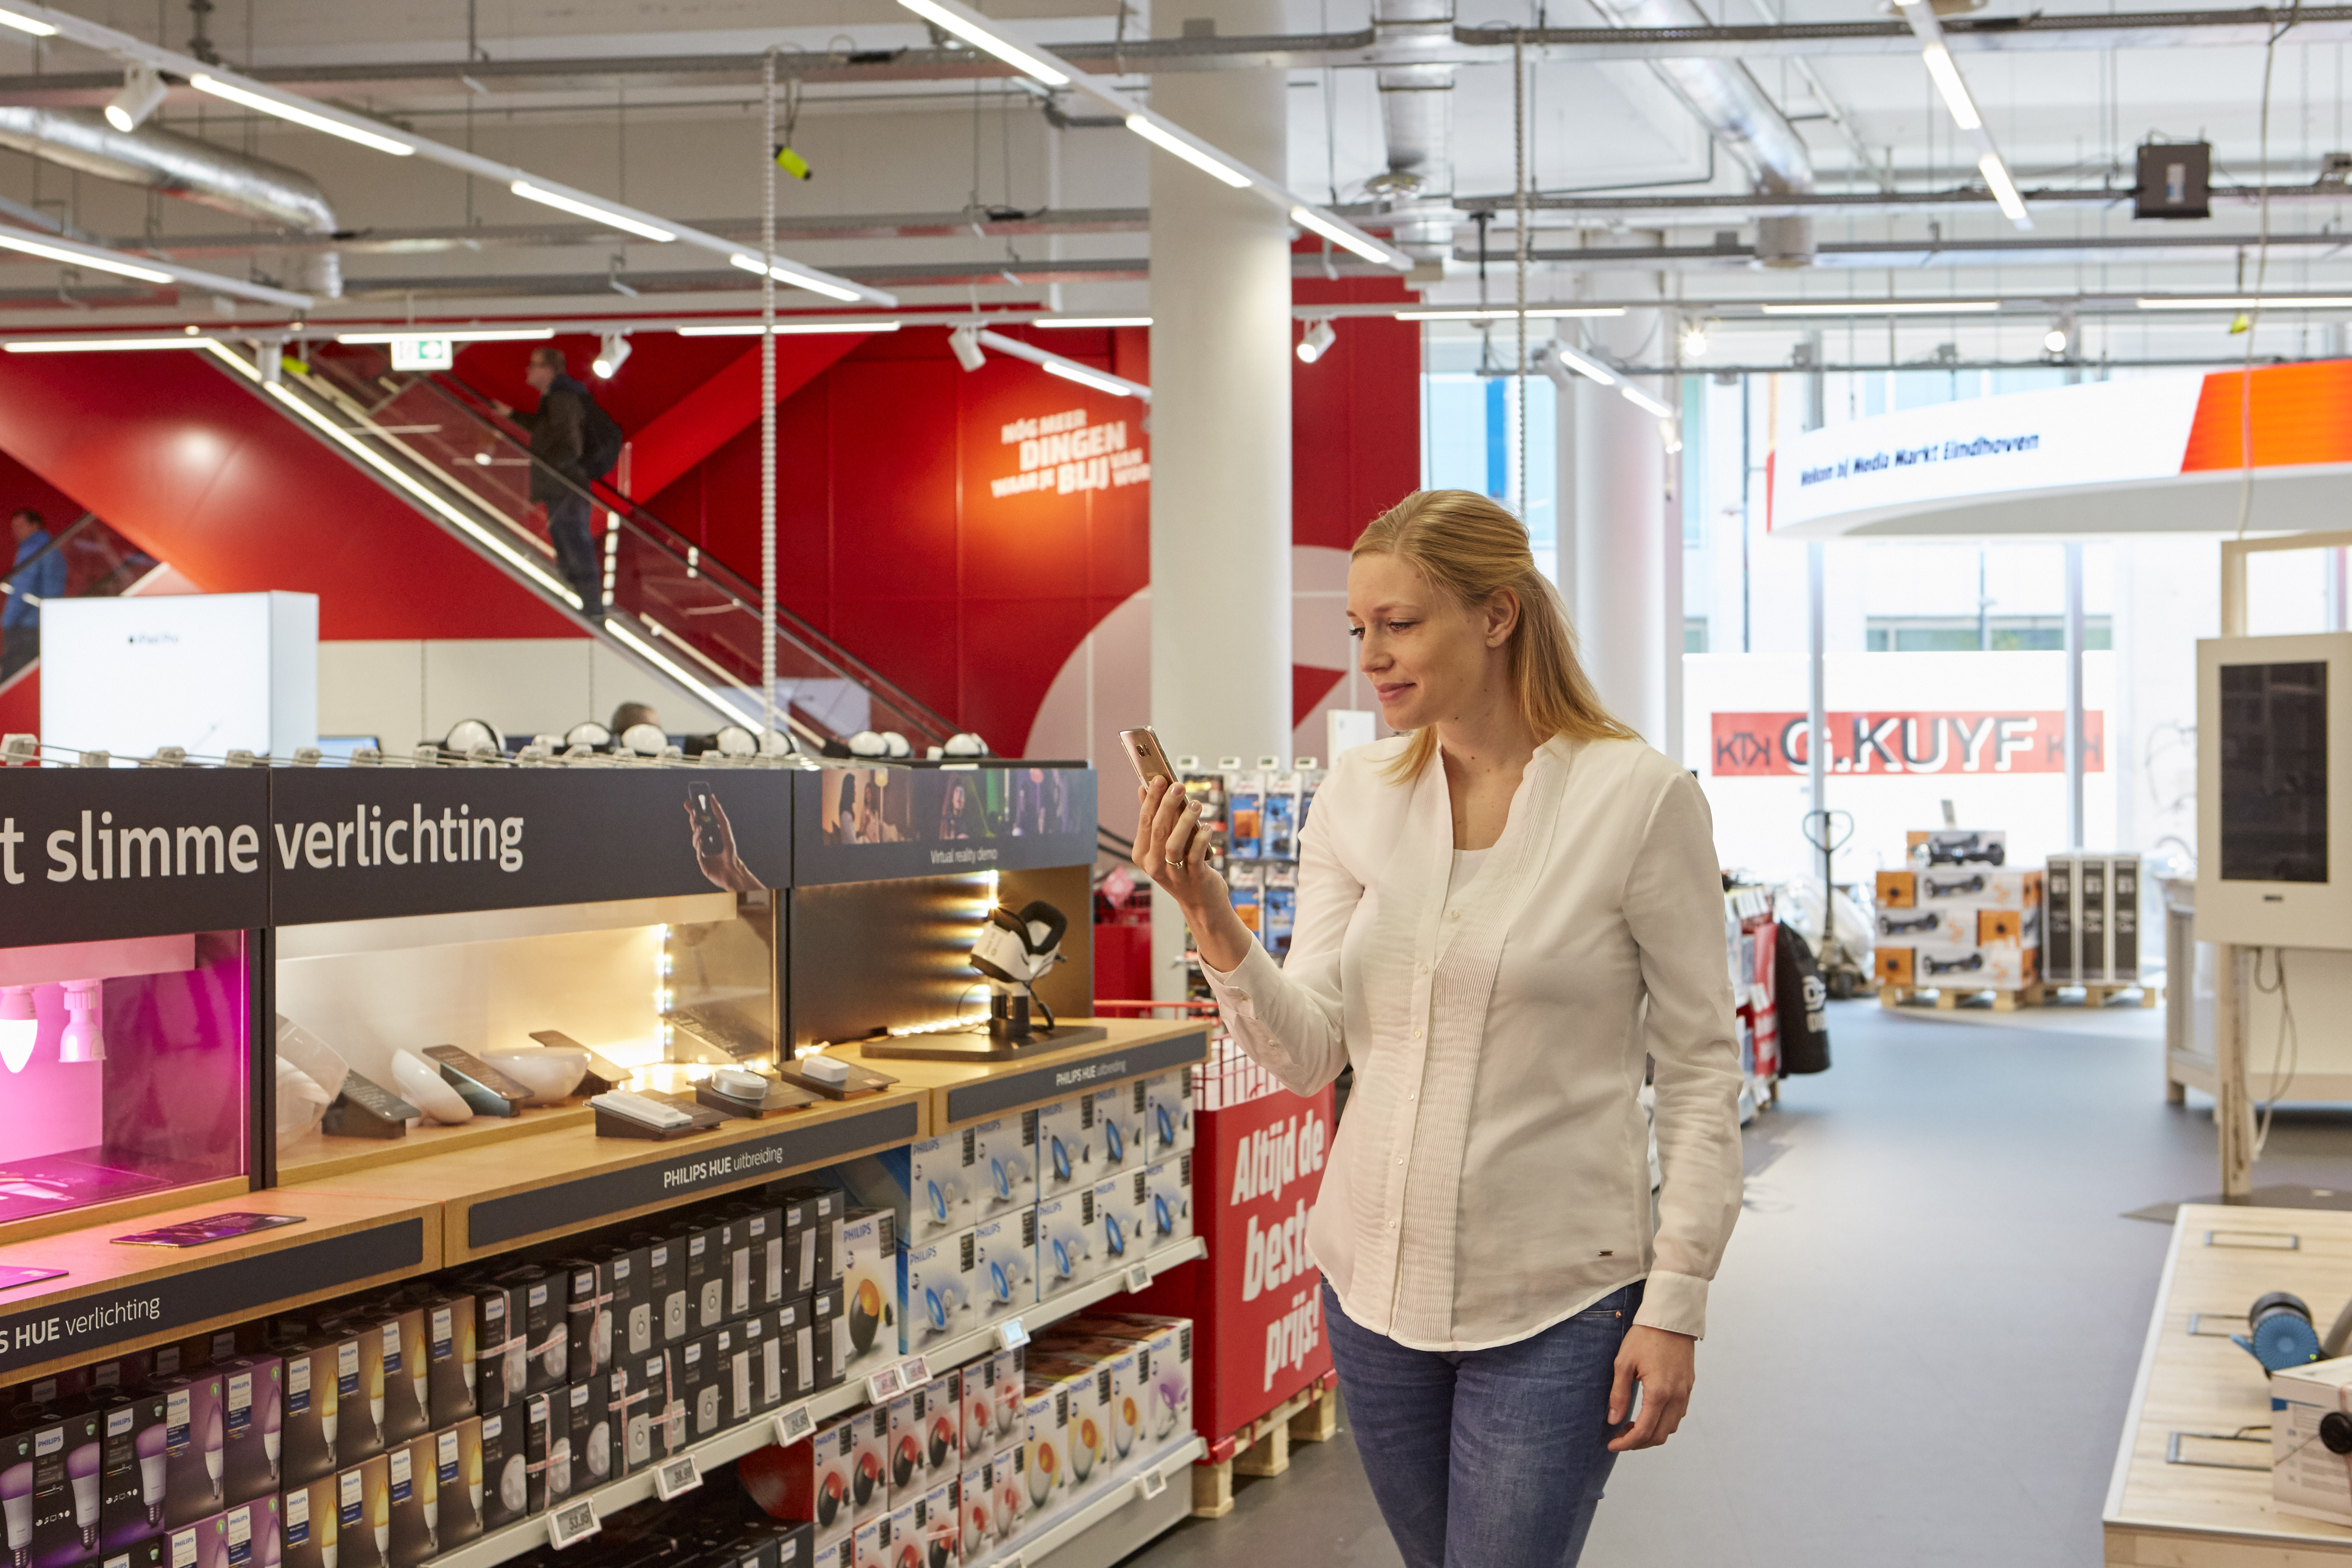 Philips-Lighting-Indoorpositioning-MediaMarkt Storeguide-app-shopper